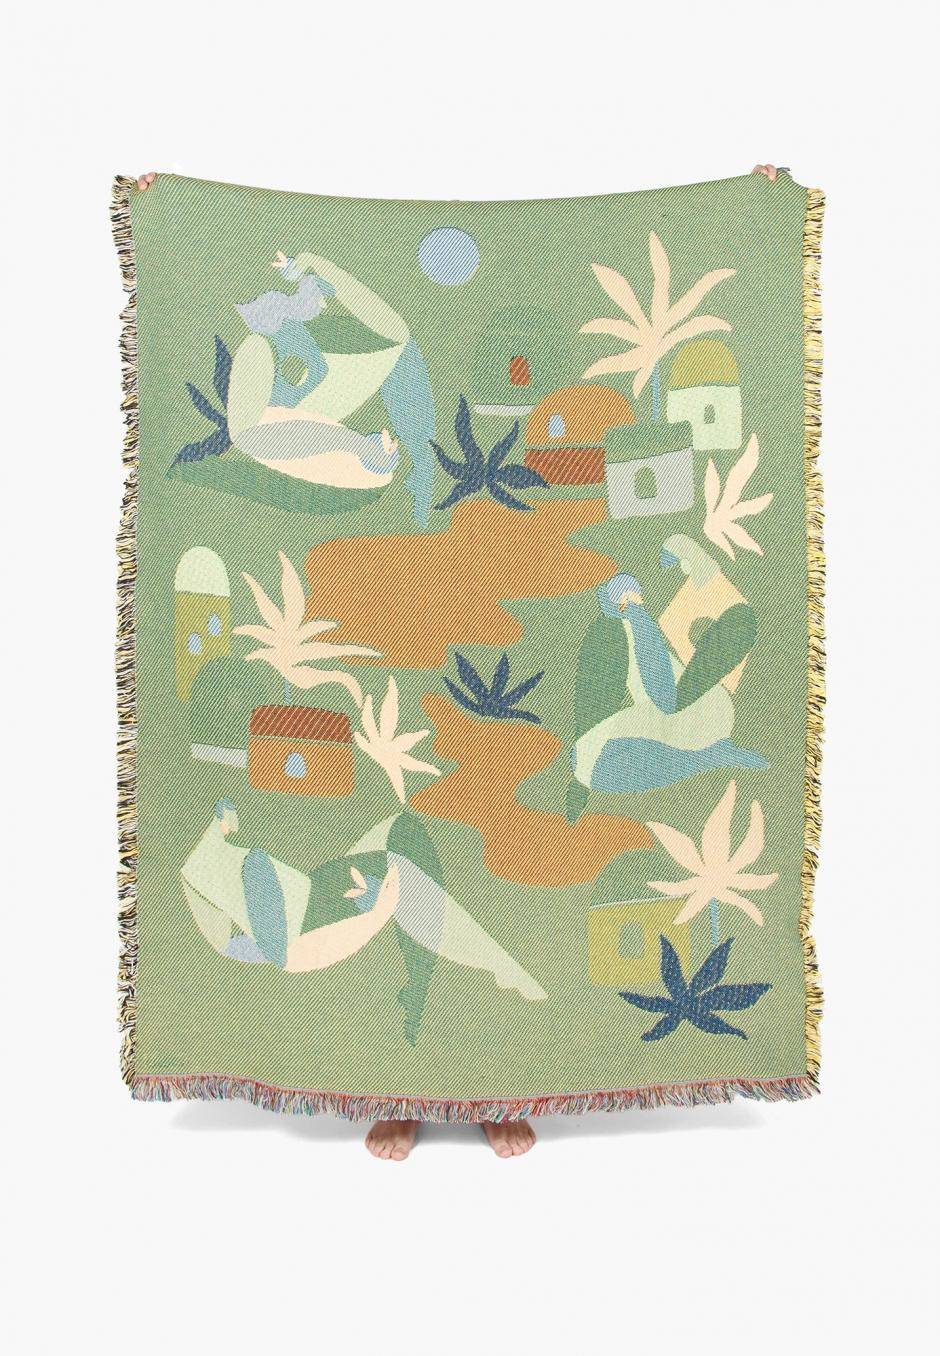 Slowdown Studio Ayers Throw - Maggie Stephenson